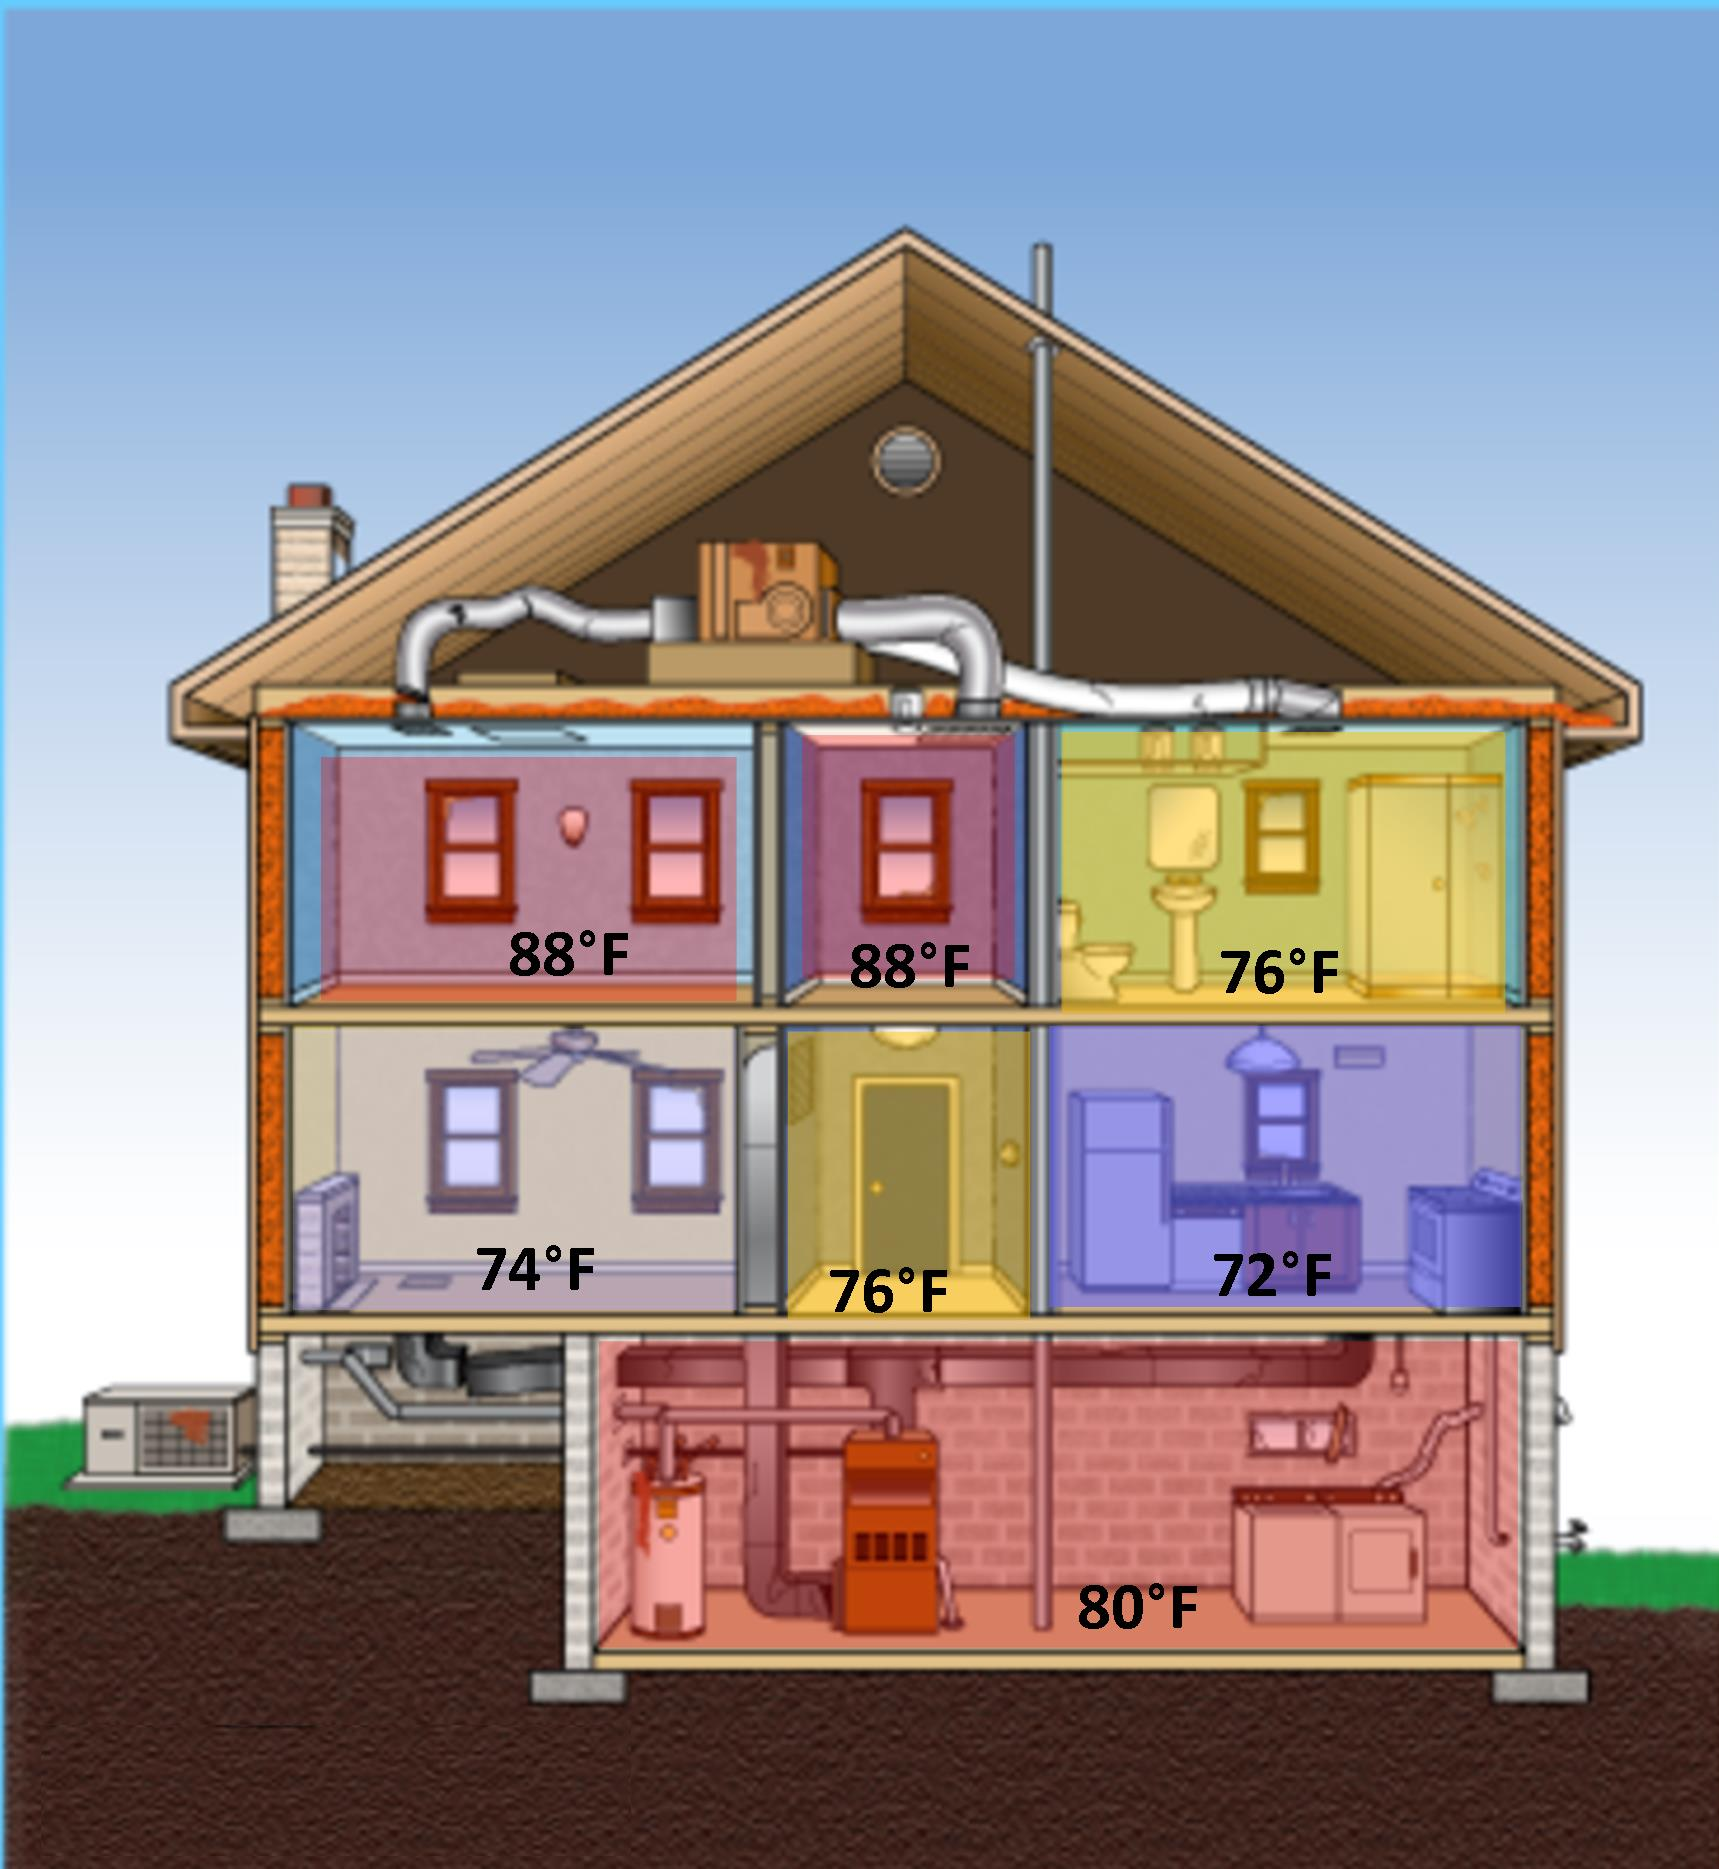 Zoning your home heating system get zoned out for The best heating system for home